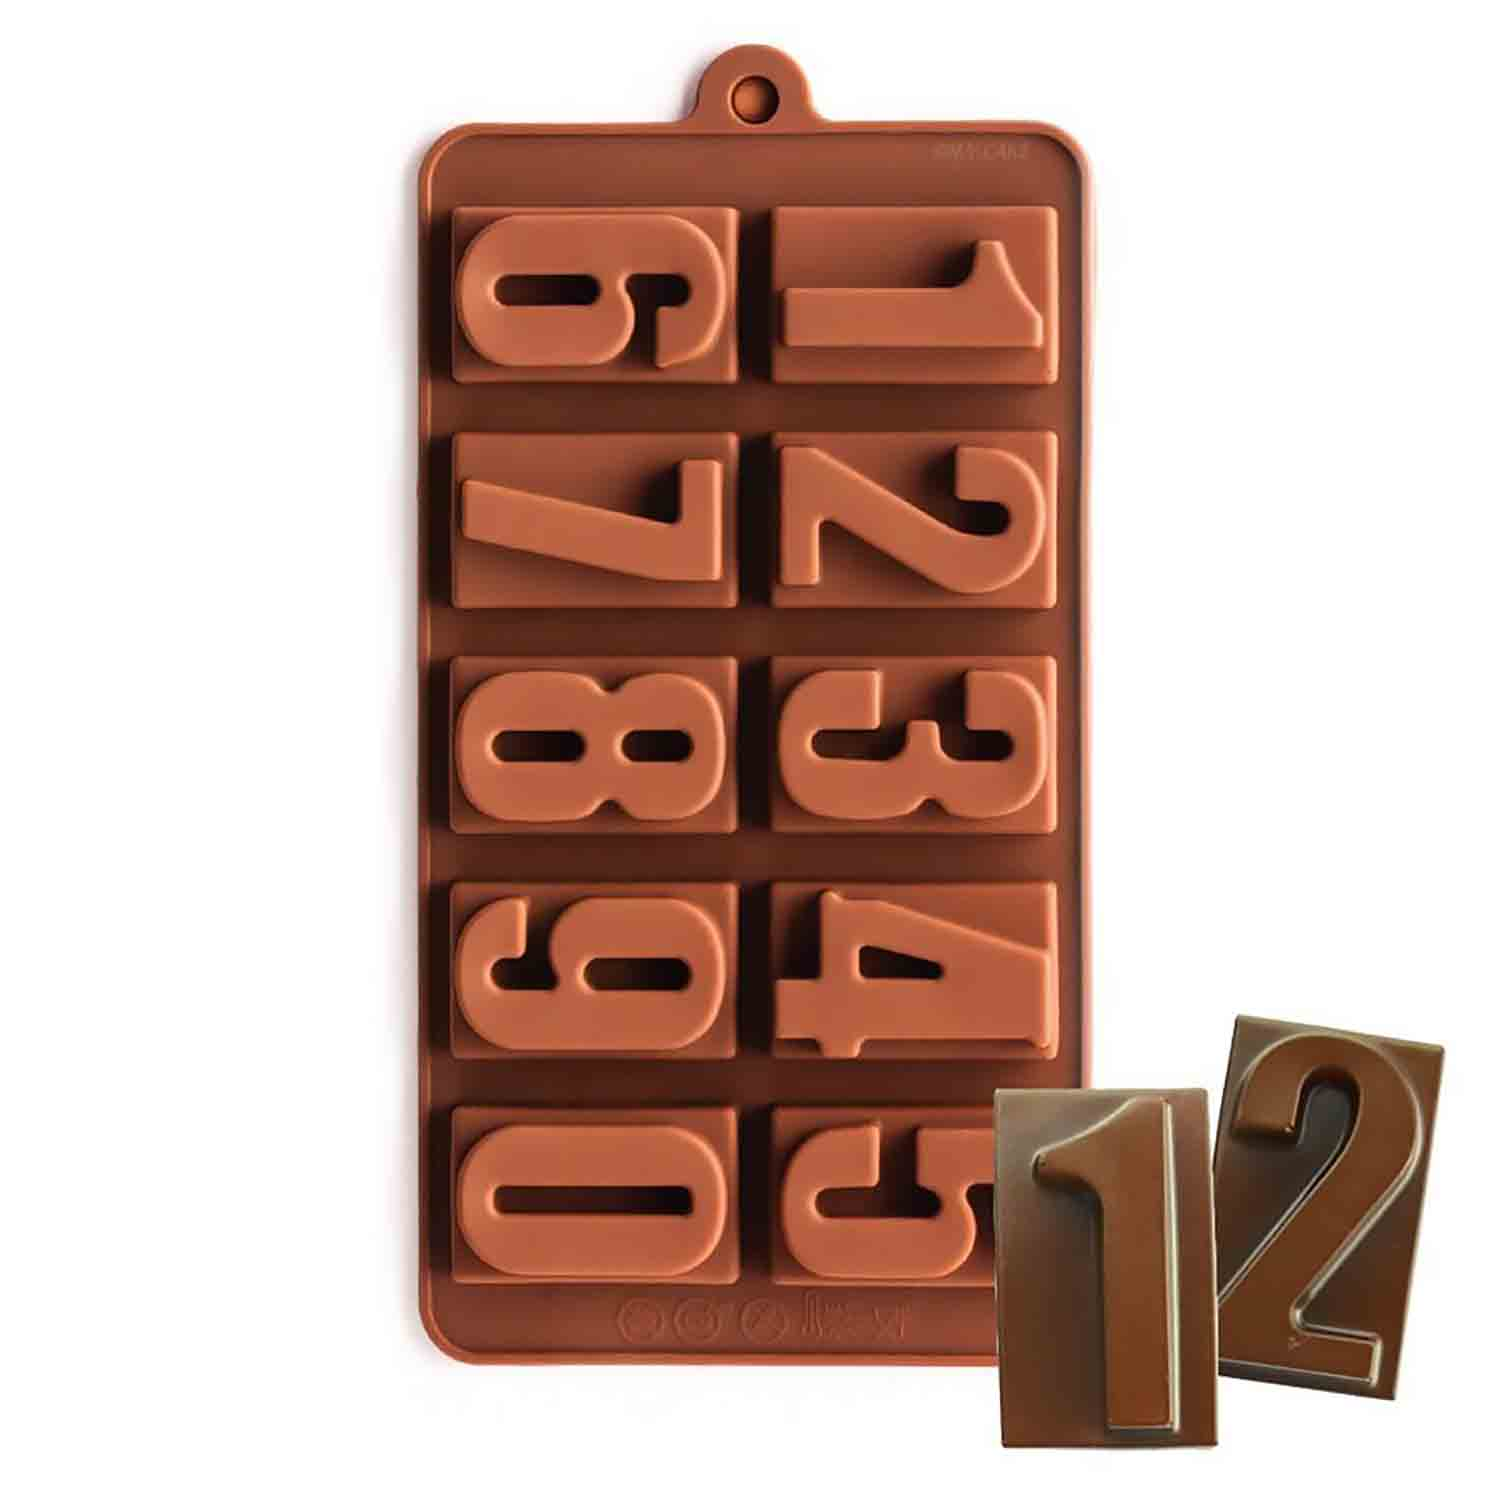 Numbers Silicone Chocolate Candy Mold